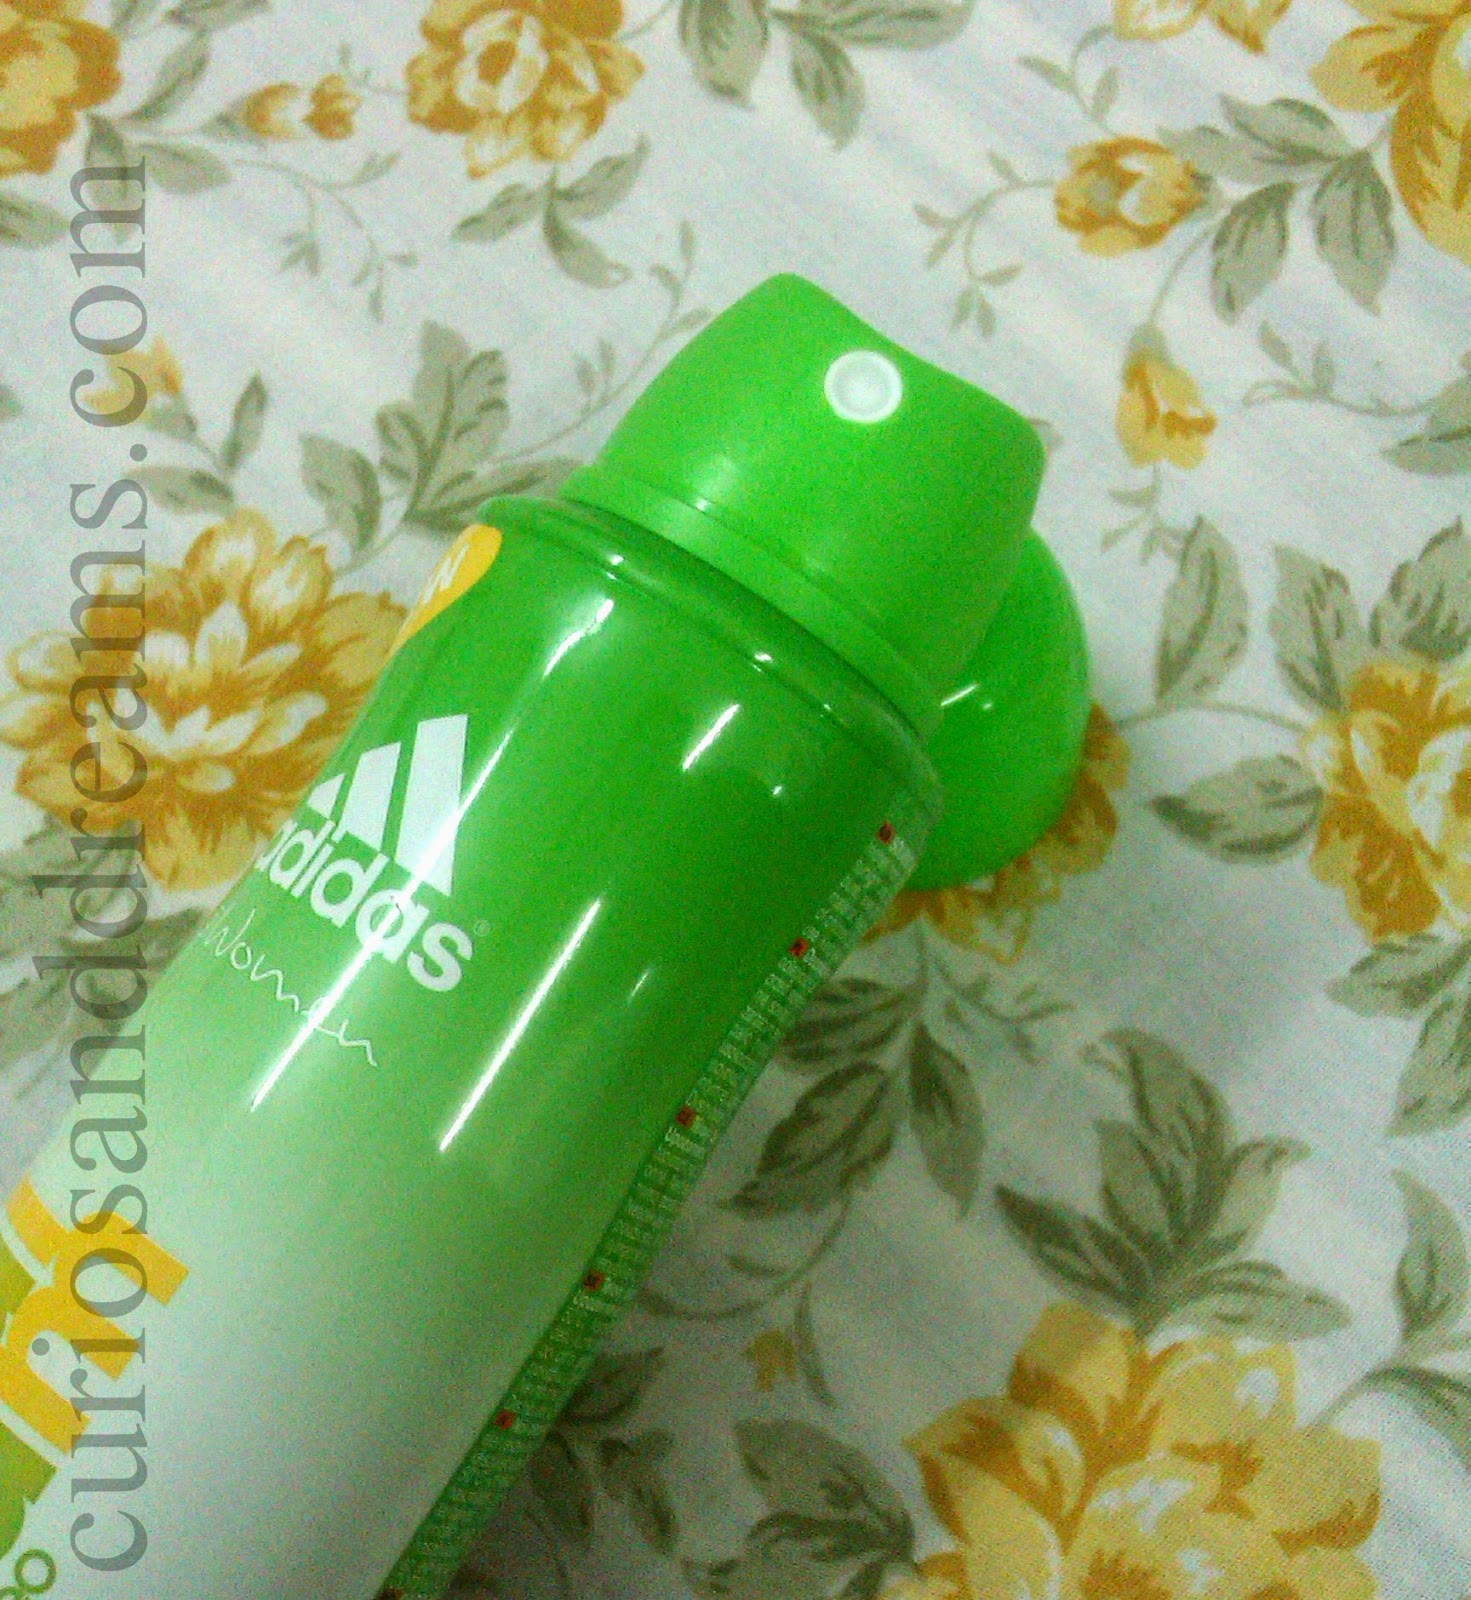 Curios And Dreams Makeup And Beauty Product Reviews Adidas For